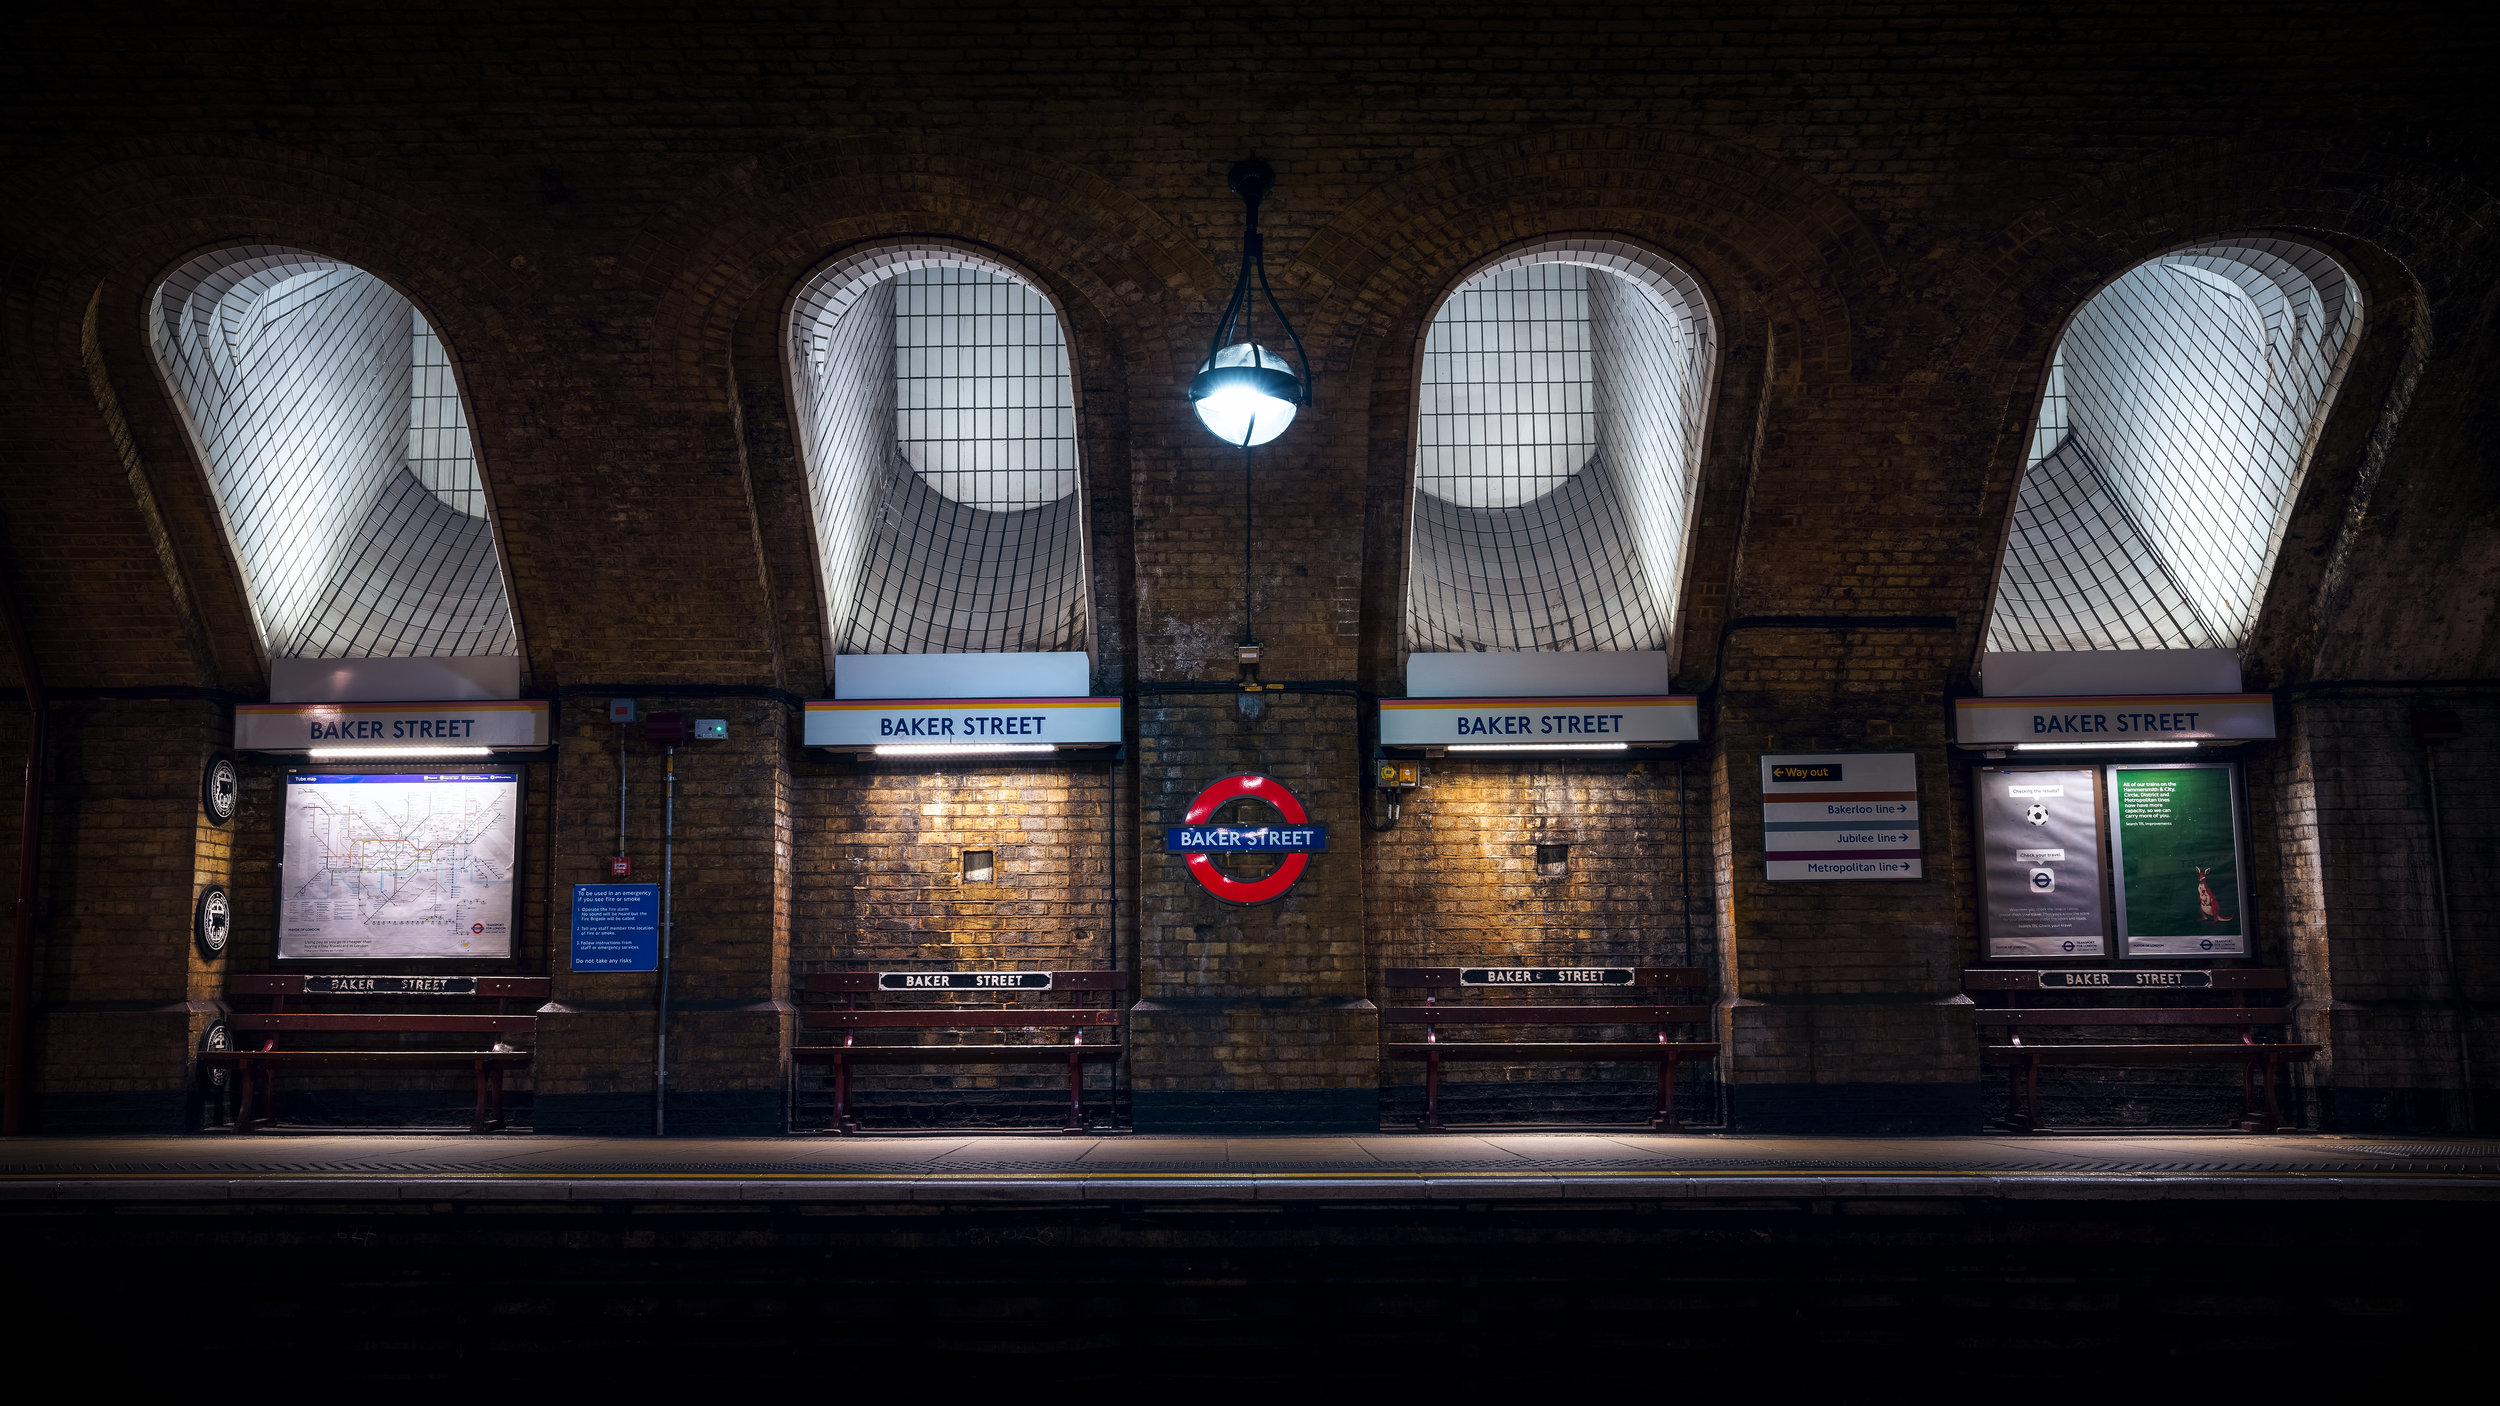 This is the finished product, I'm quite pleased with it, I wanted to shoot a really wide pano but the station was quite busy and it would have take a lot of time to get it exactly how I wanted it. So I'll save that one for another day, one that isn't over a bank holiday weekend.  This is an incredibly detailed image, you cant quite read the writing on the tube map zoomed in though.  Shot with Sony 24-70 f2.8 at 32mm, f9, iso 100, 1.6 secconds